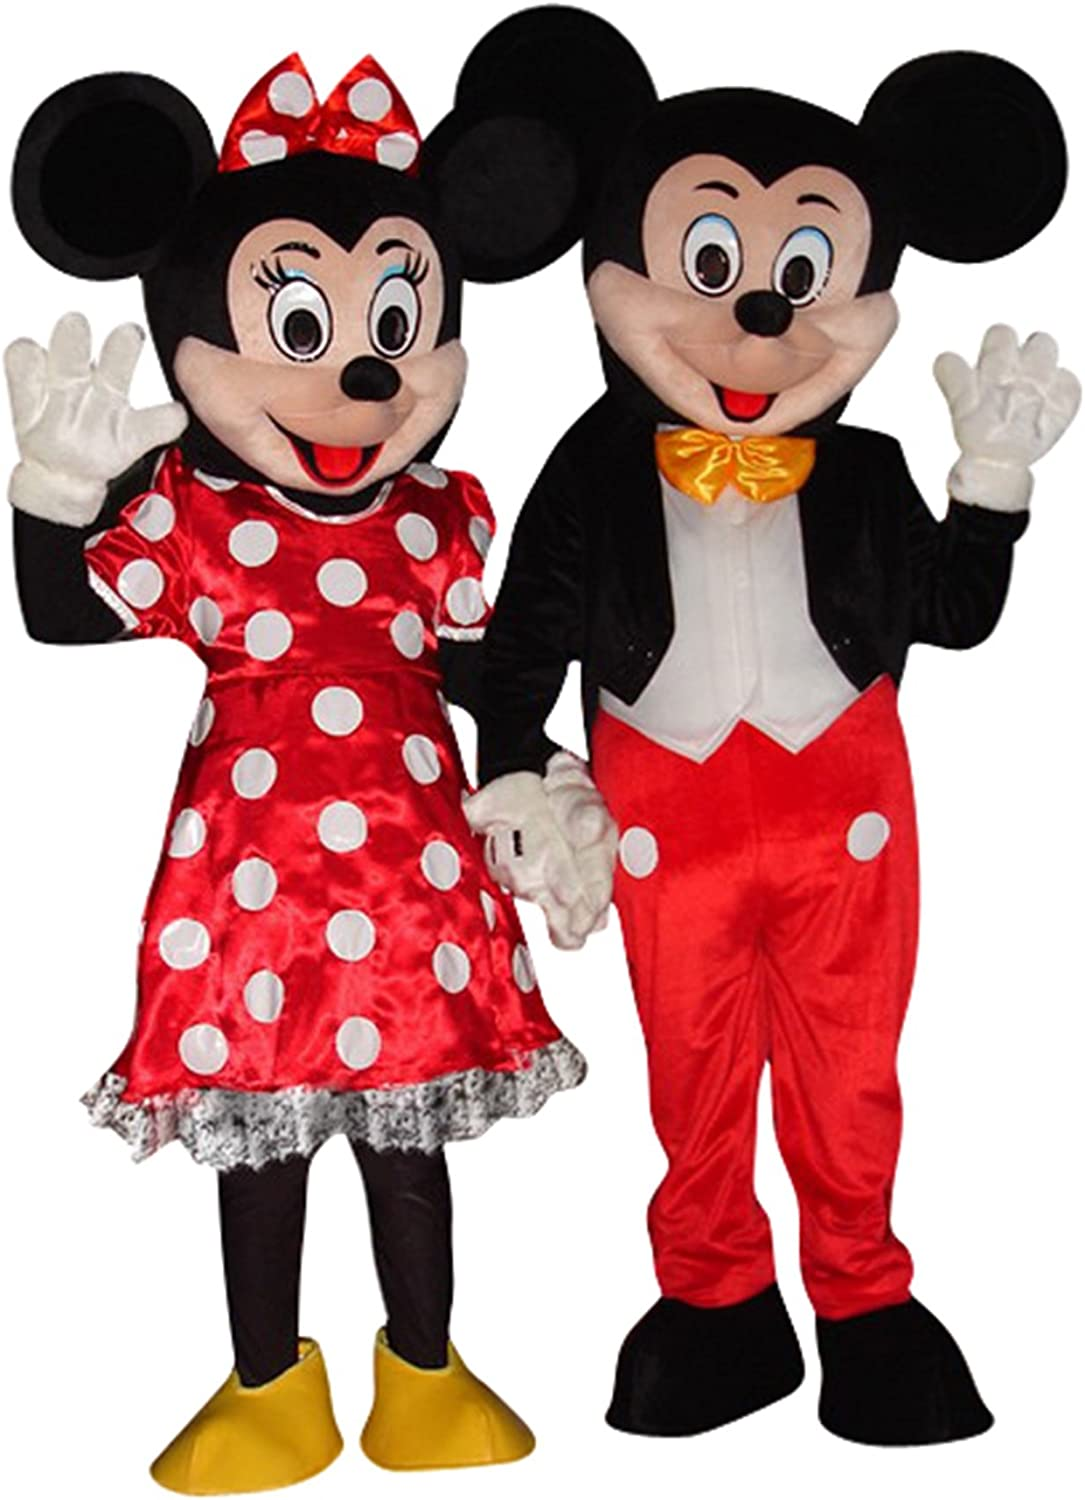 Disfraz de Mickey Mouse y Minnie Mouse, para adultos, para ...